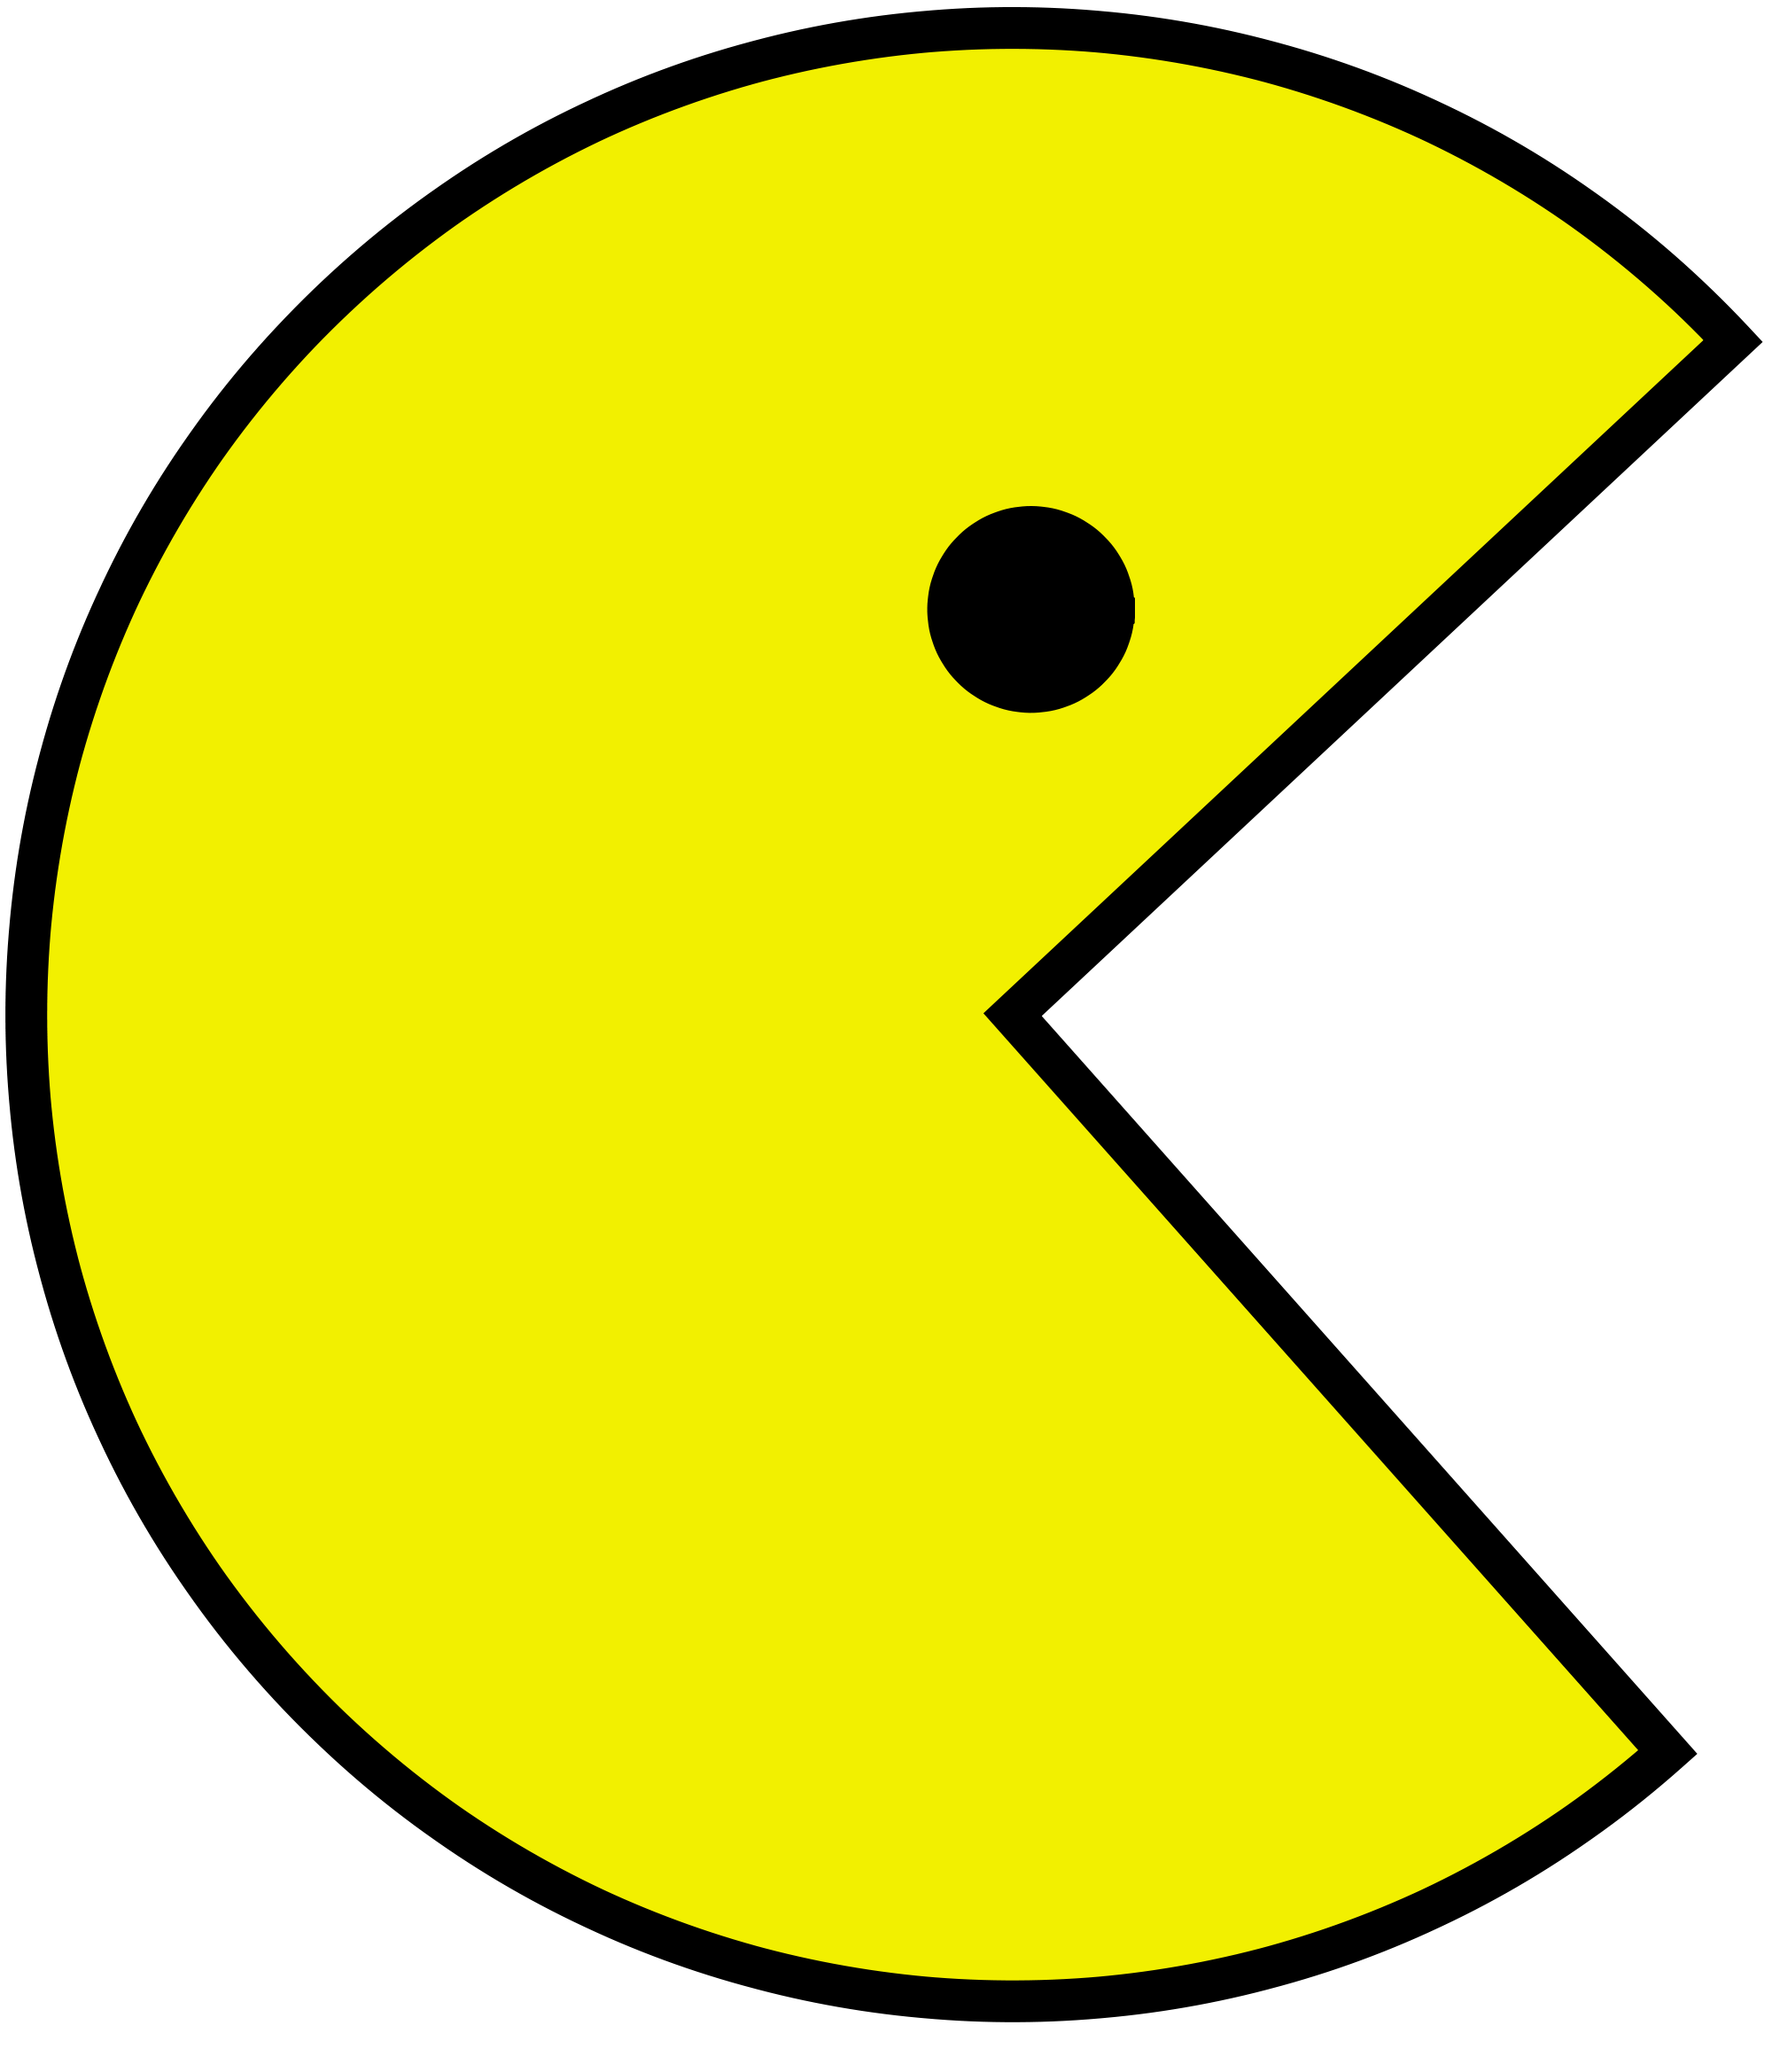 Pac-Man | Know Your Meme